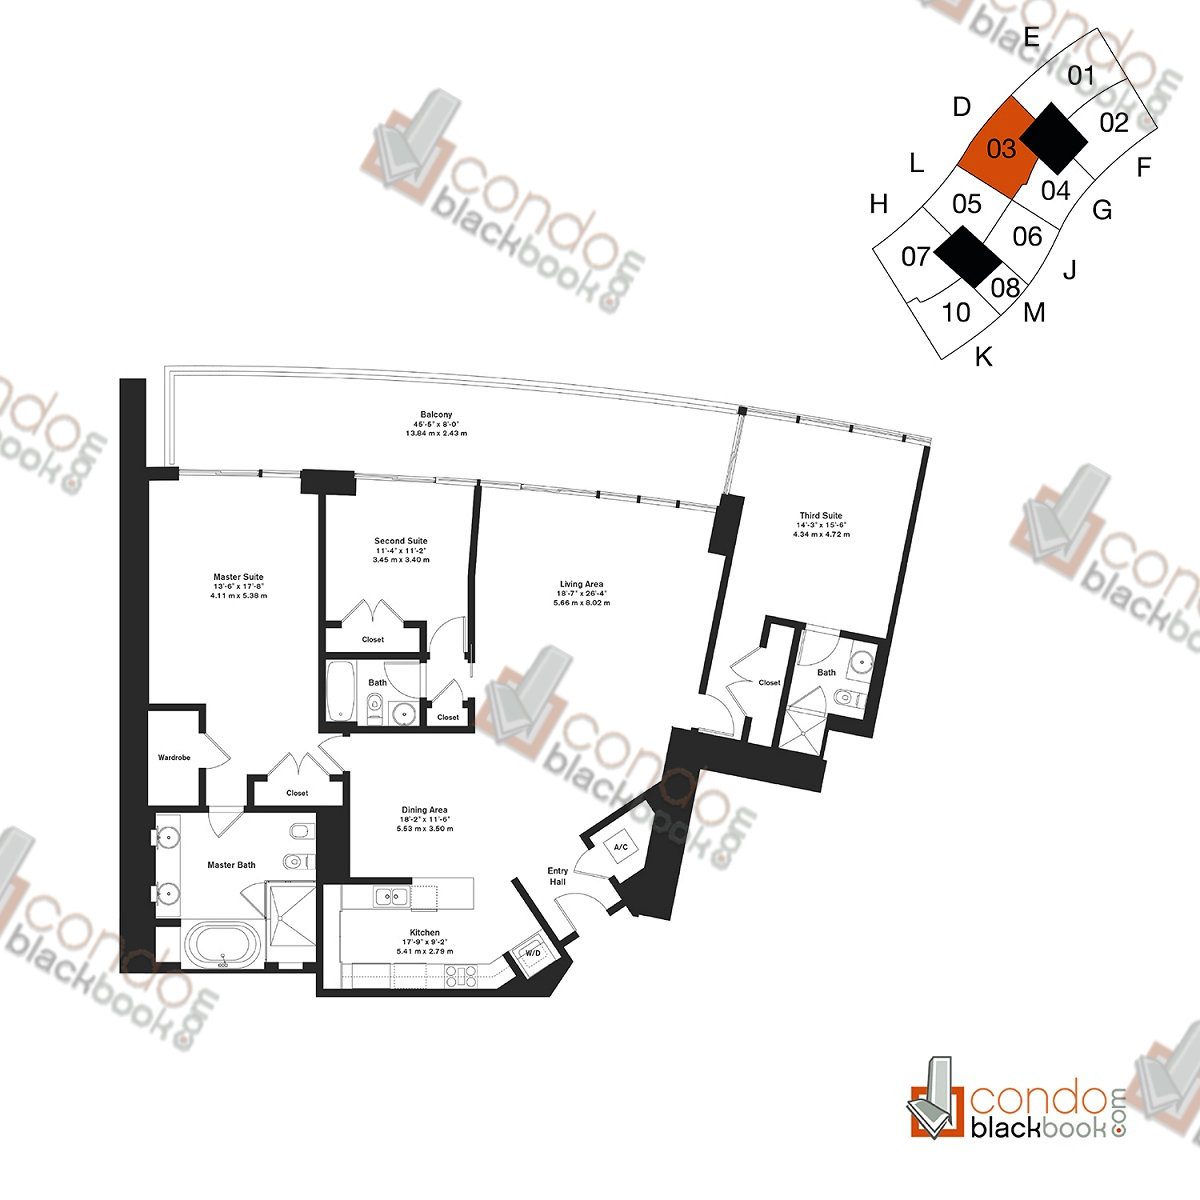 Floor plan for ICON South Beach South Beach Miami Beach, model Residence D, line 03, 3/3 bedrooms, 2,158 sq ft